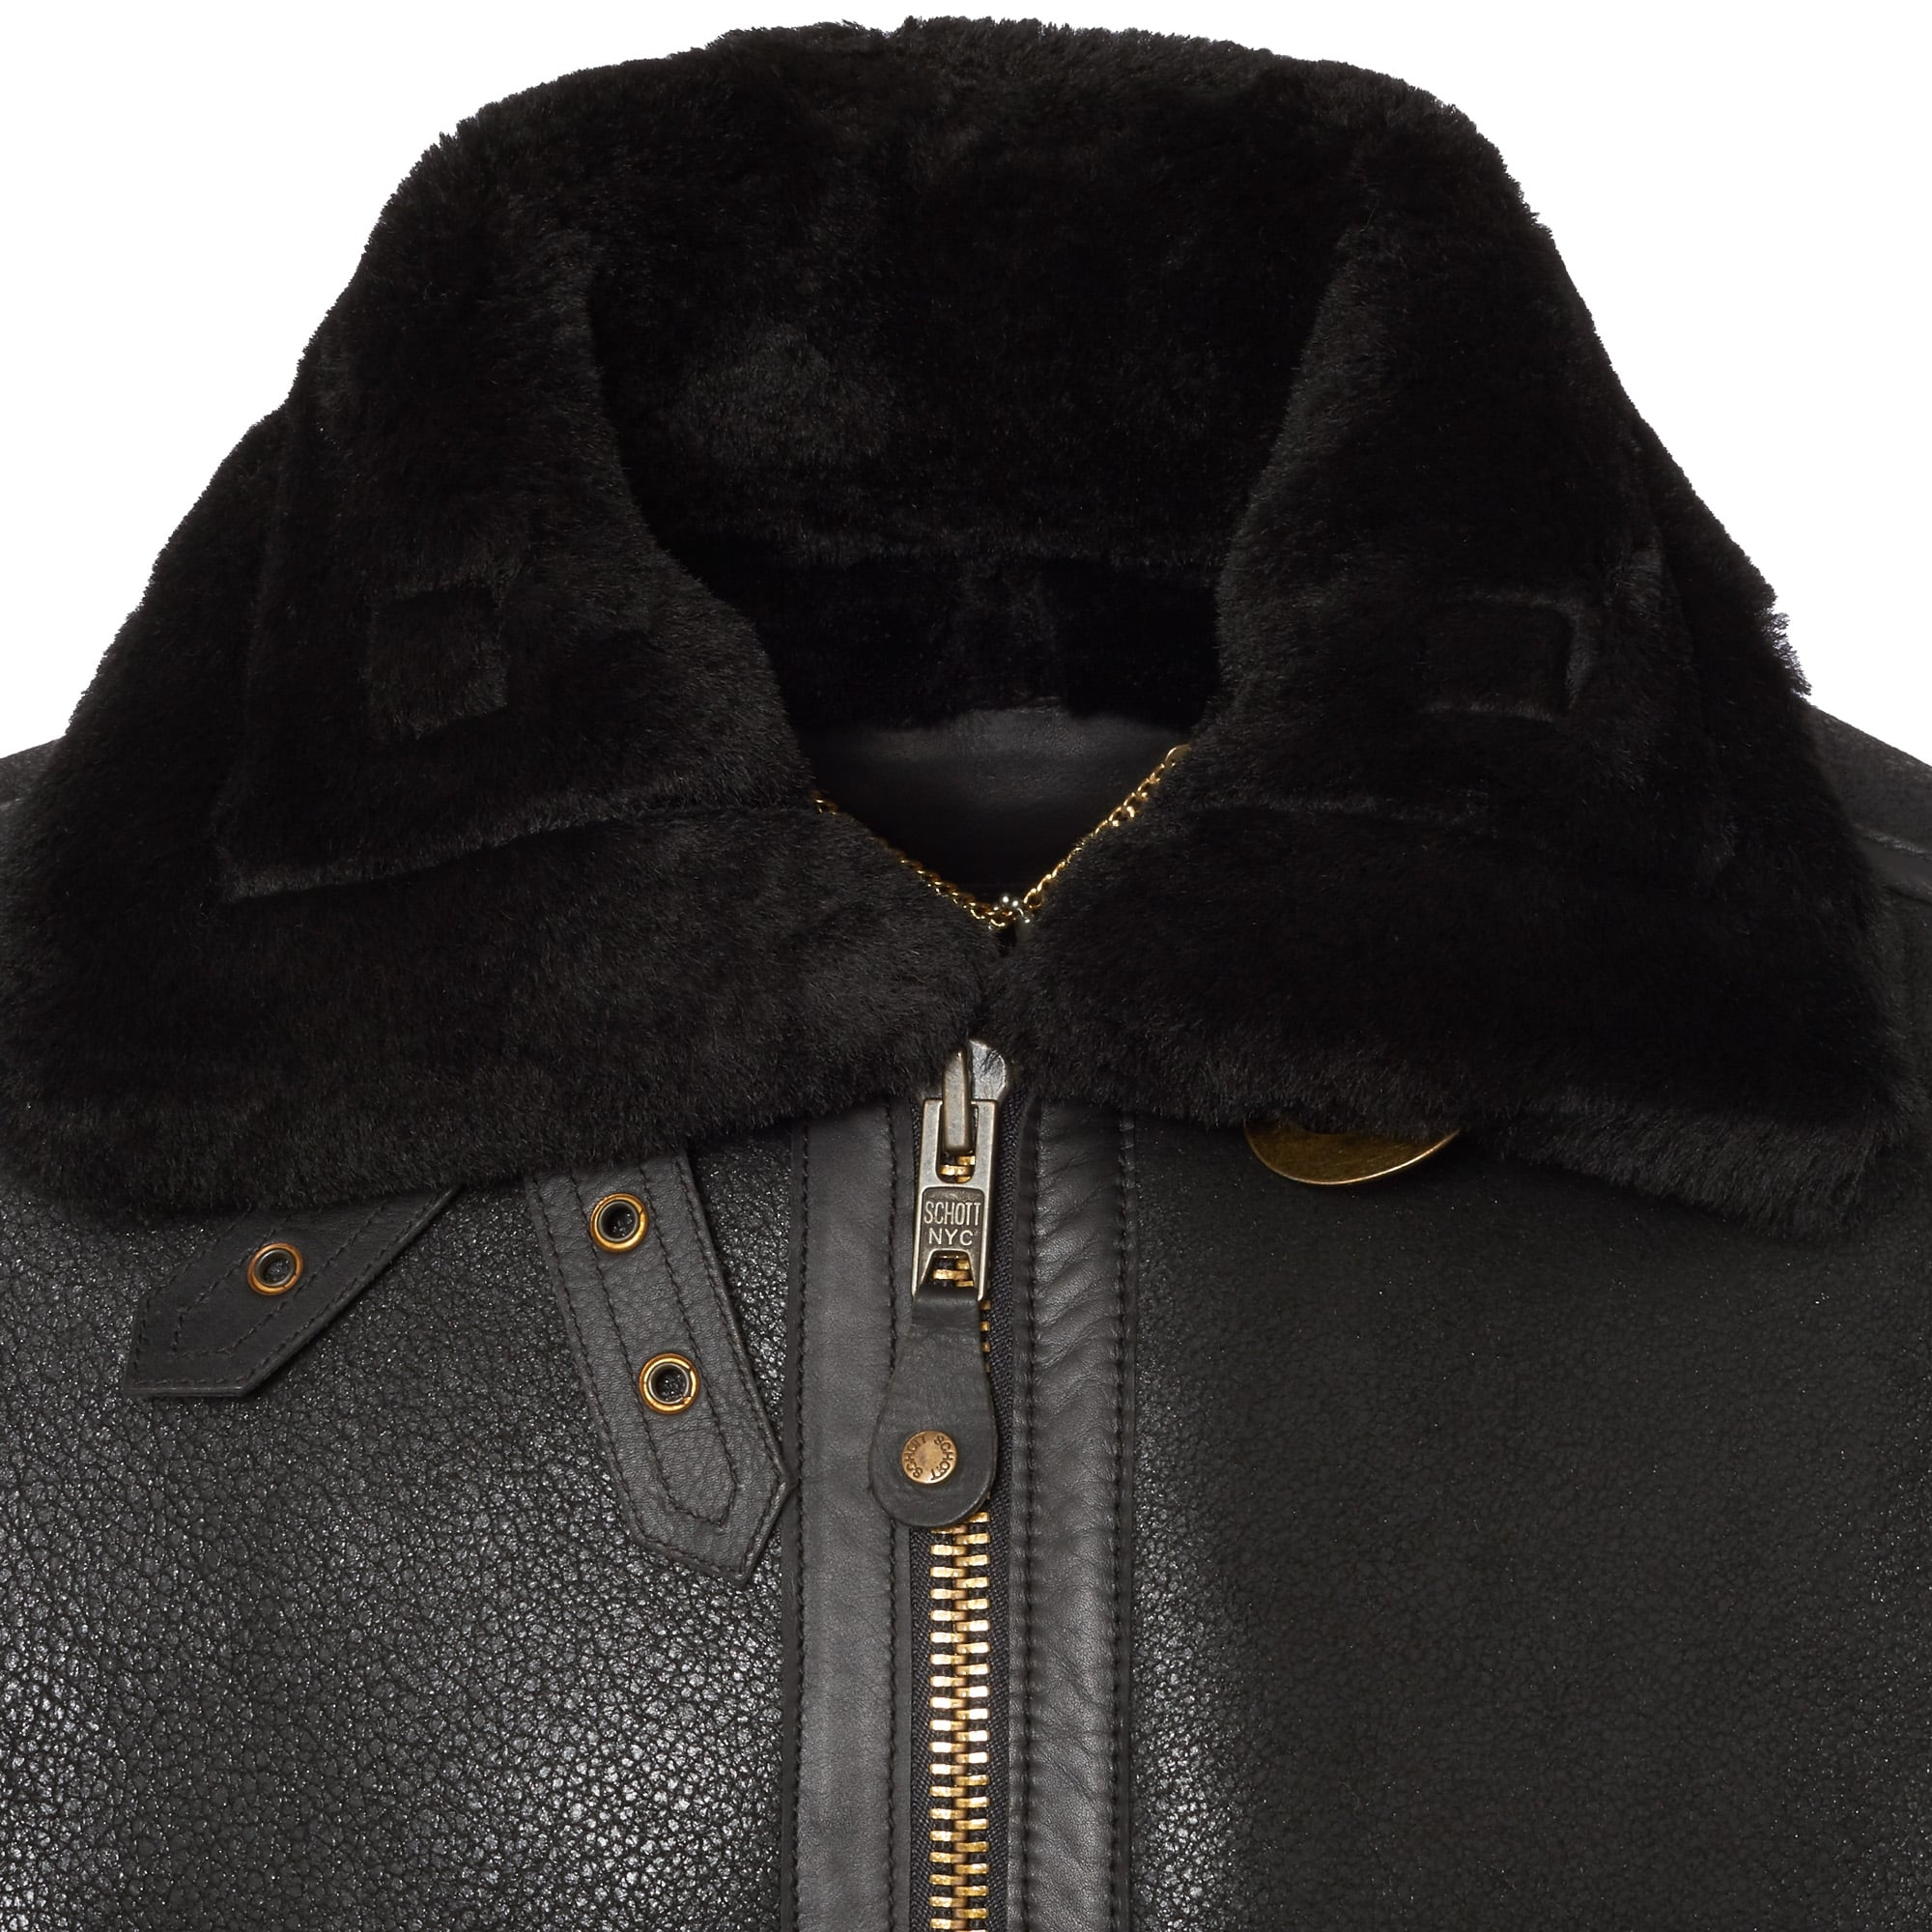 Schott Bombardier Black Sheepskin Leather Jacket LC1259 - Winter ...